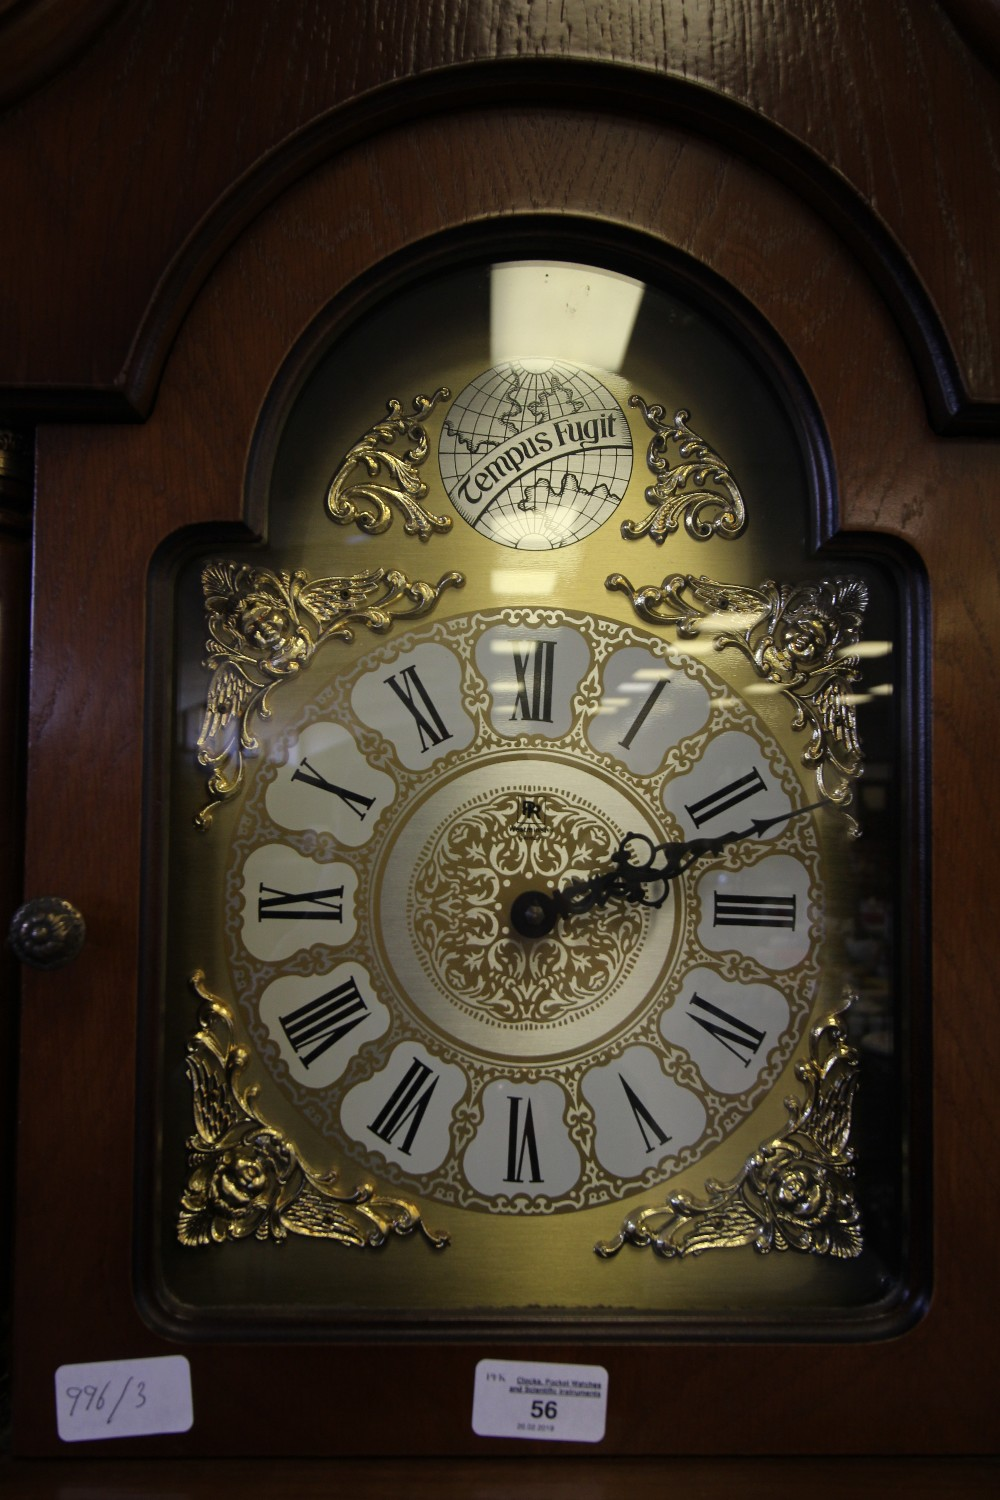 Lot 56 - Westminster Chimes Grandmother Clock